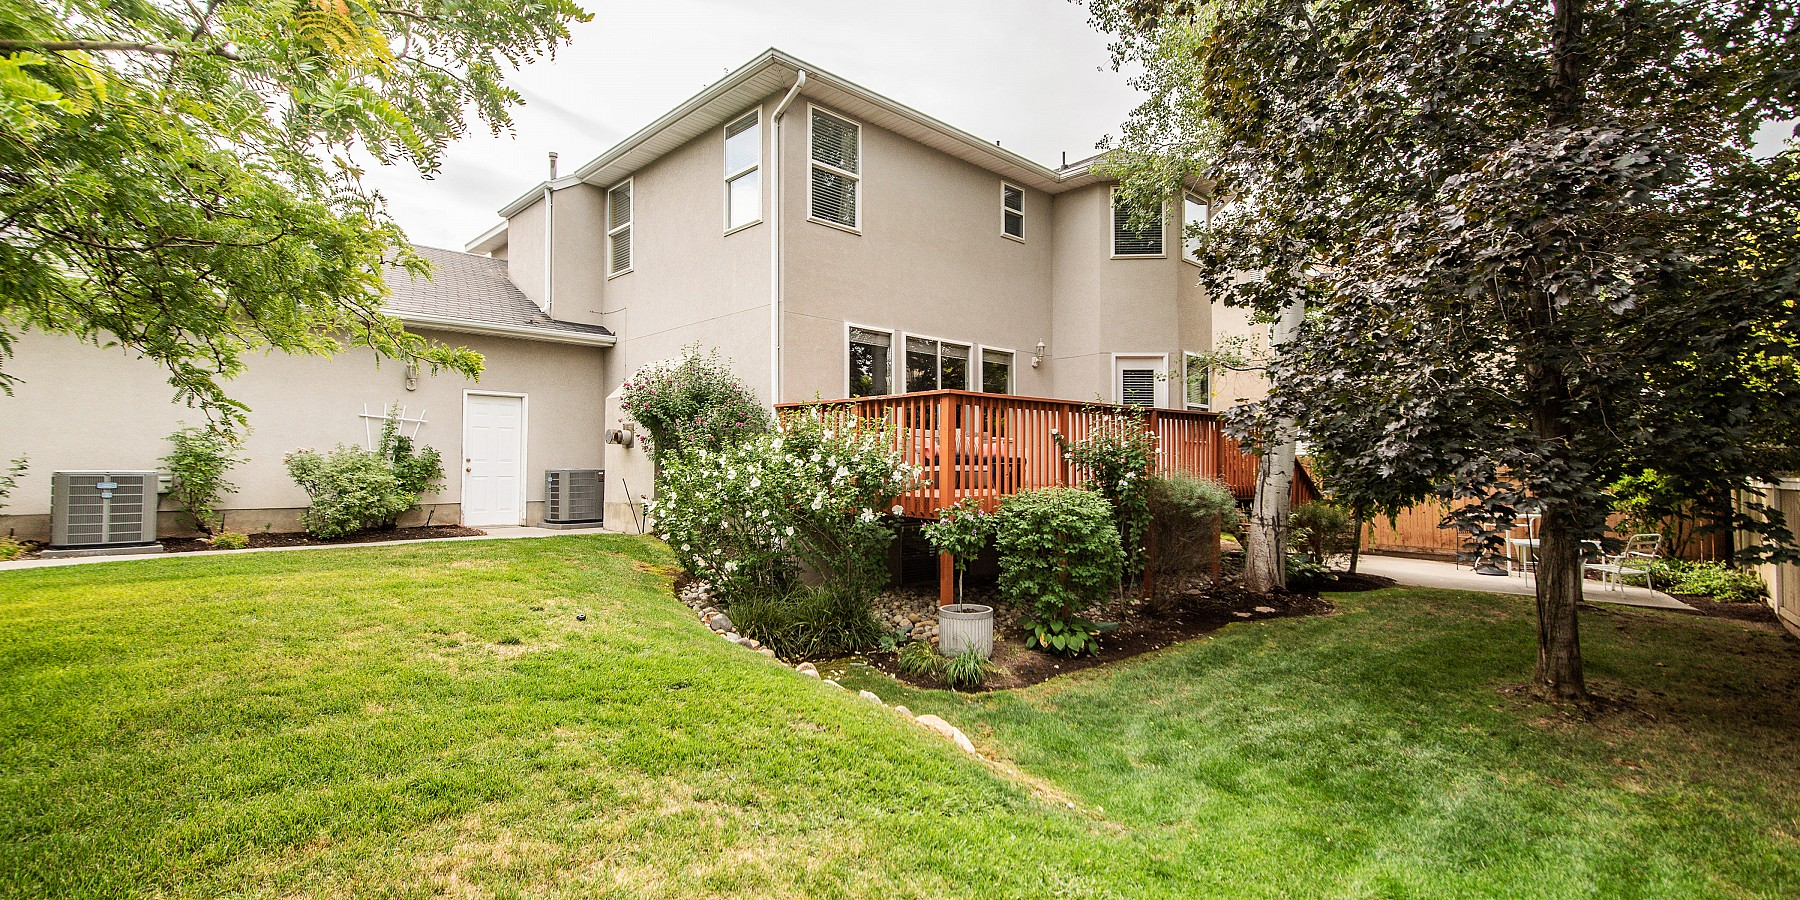 6728 S. Benecia Drive, Salt Lake City, UT 84121